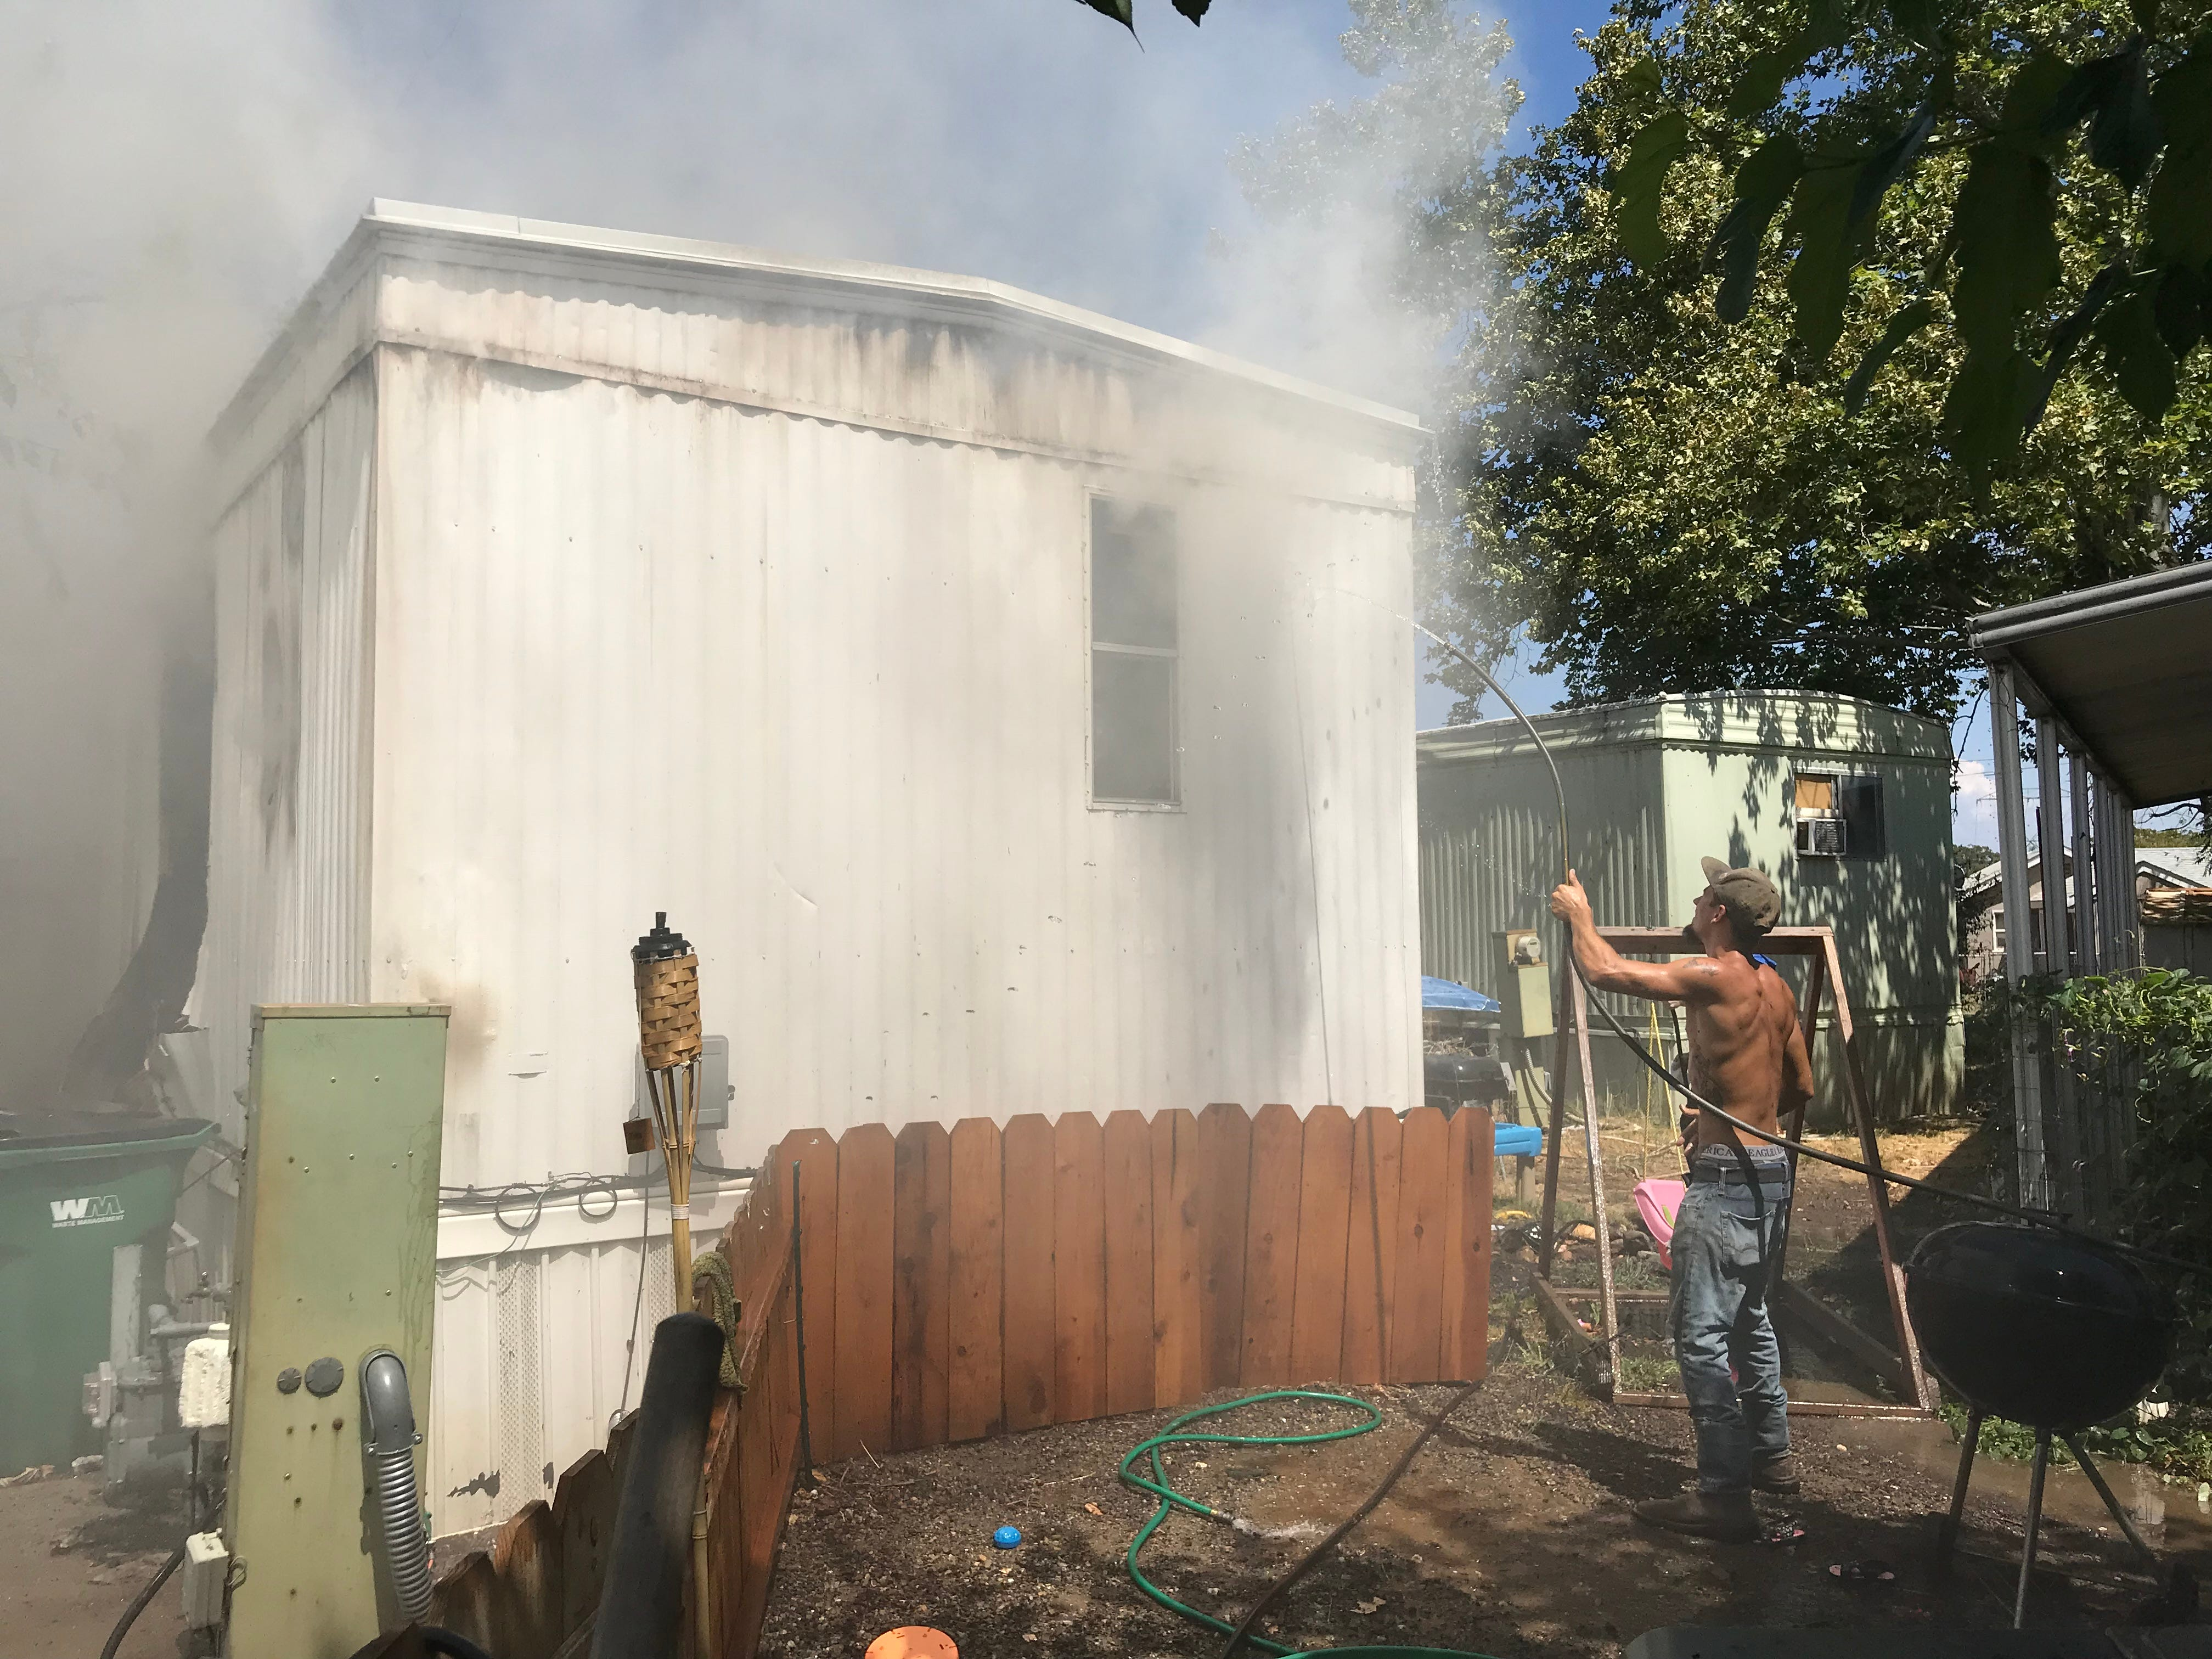 Fire destroyed a mobile home in Cottonwood on Monday.